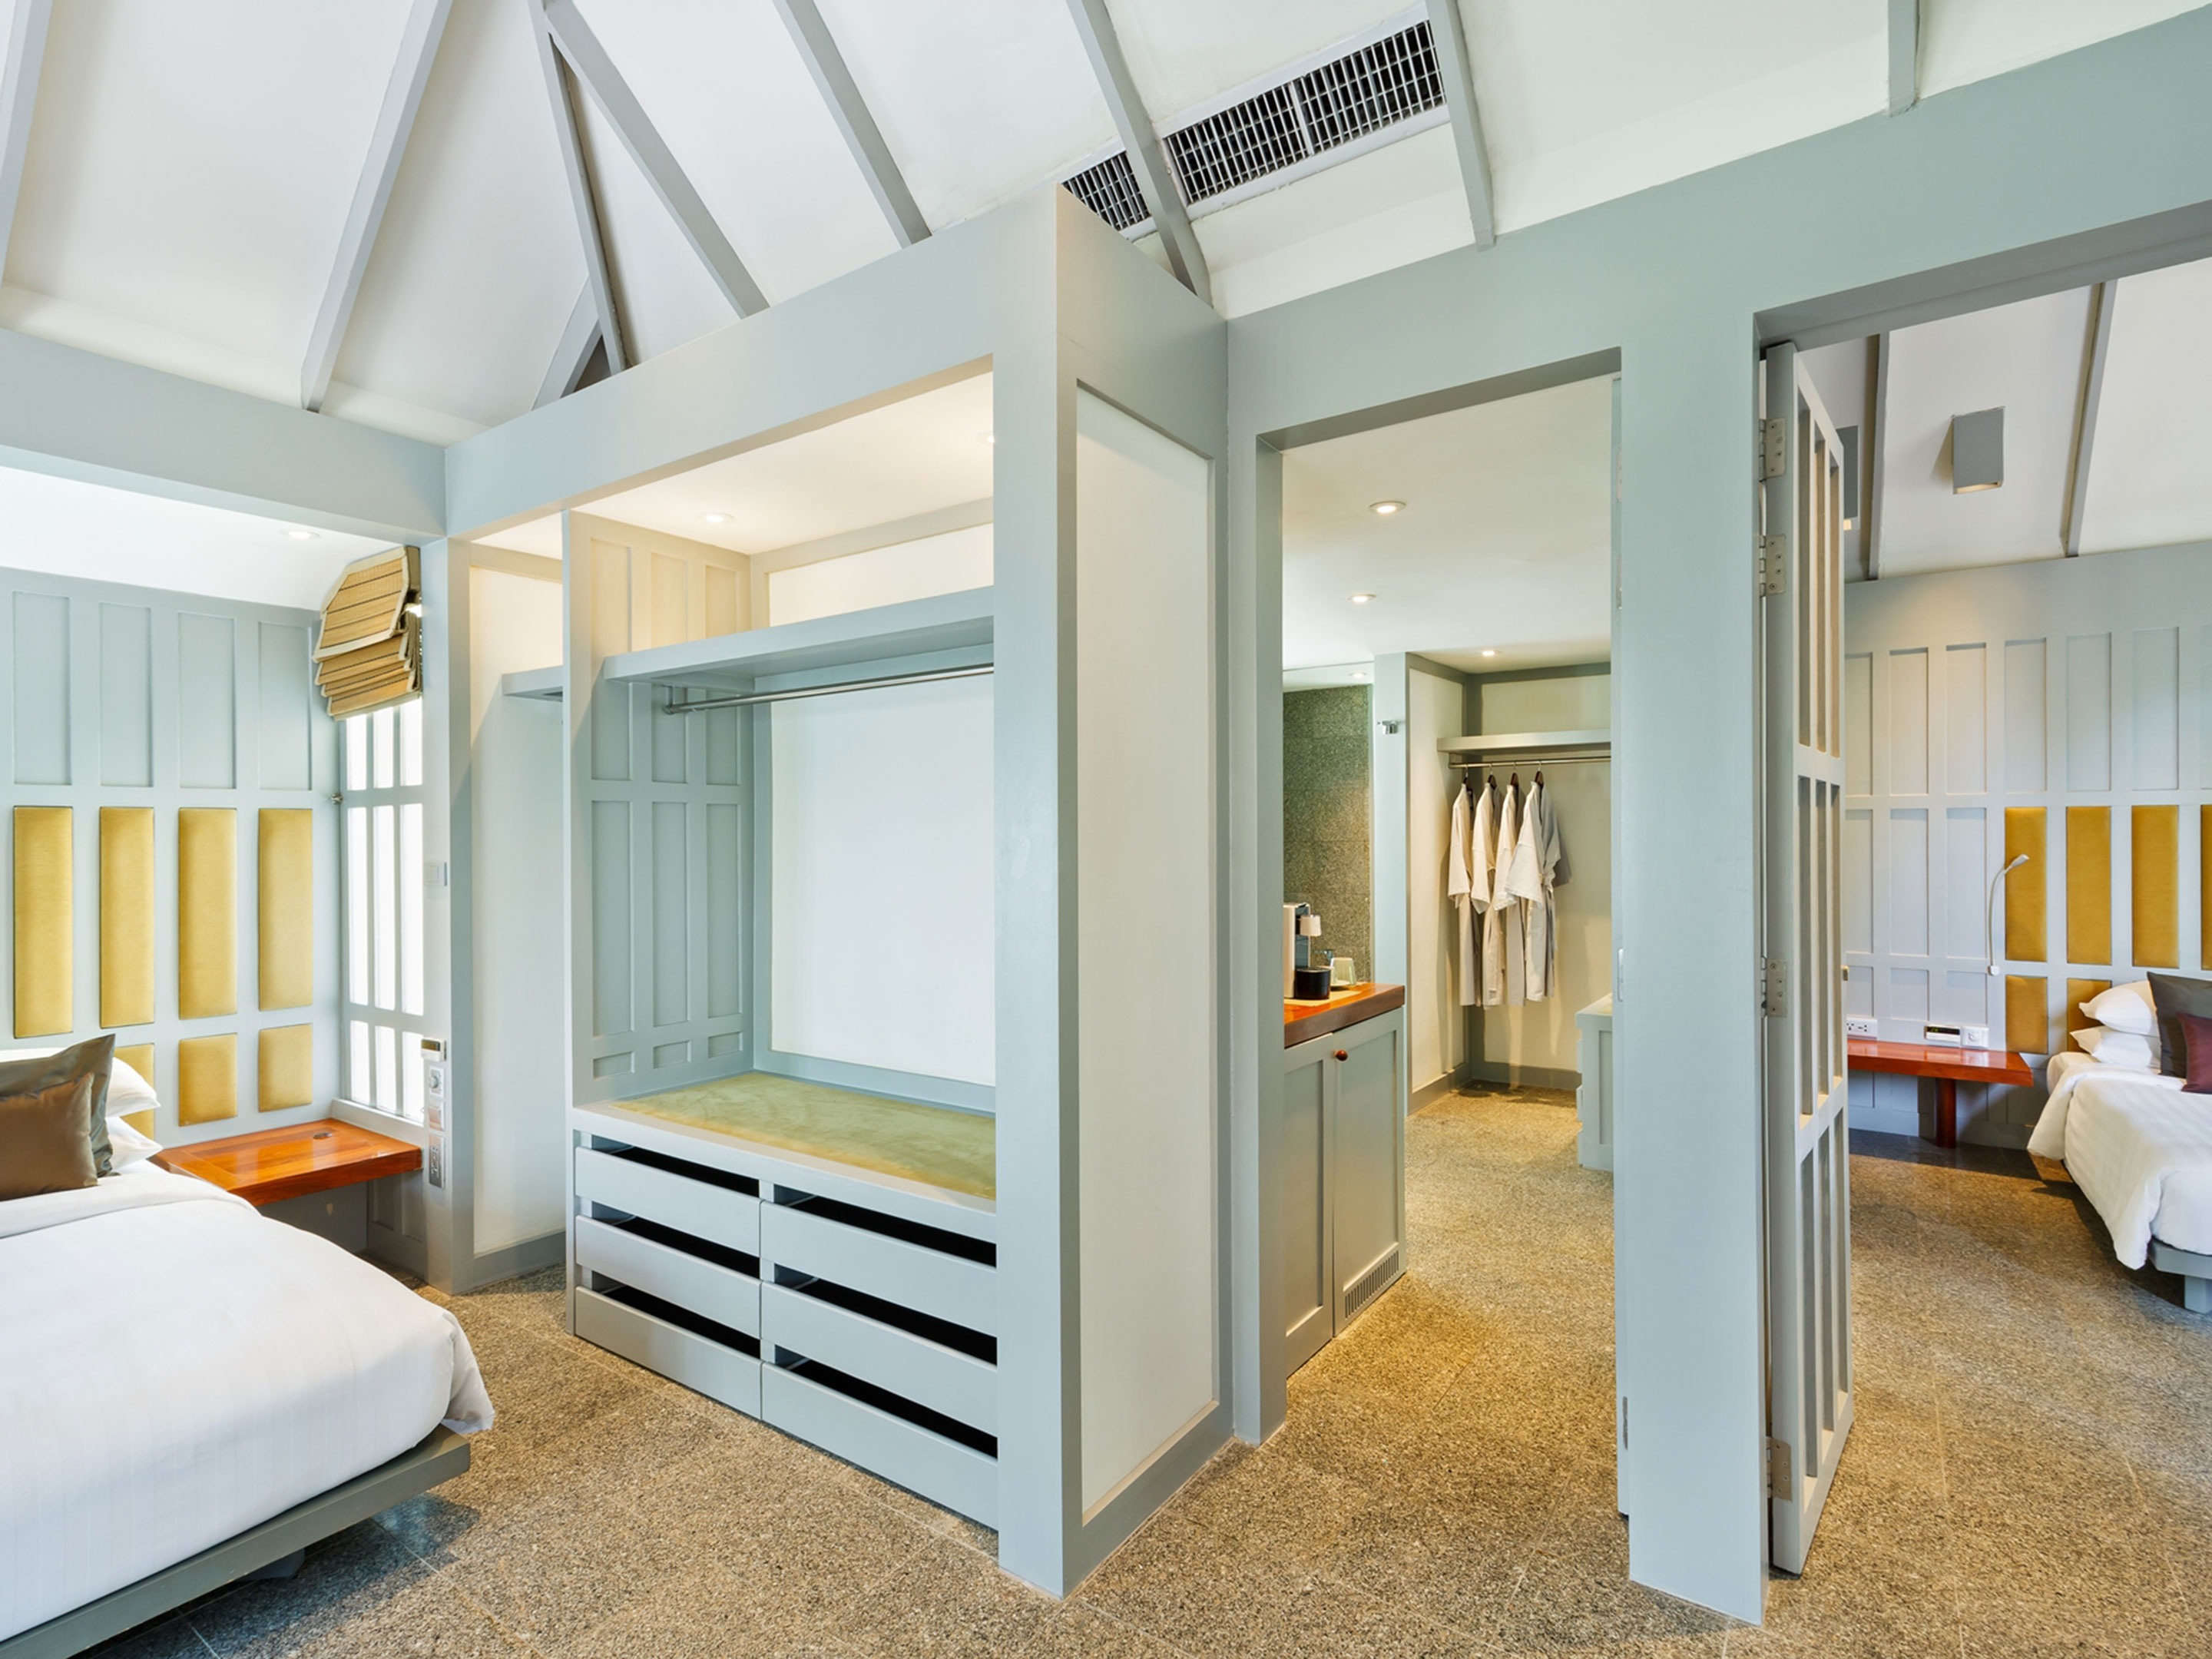 the-surin-phuket-two-bedroom-deluxe-cottage-v2-R-r2.jpg